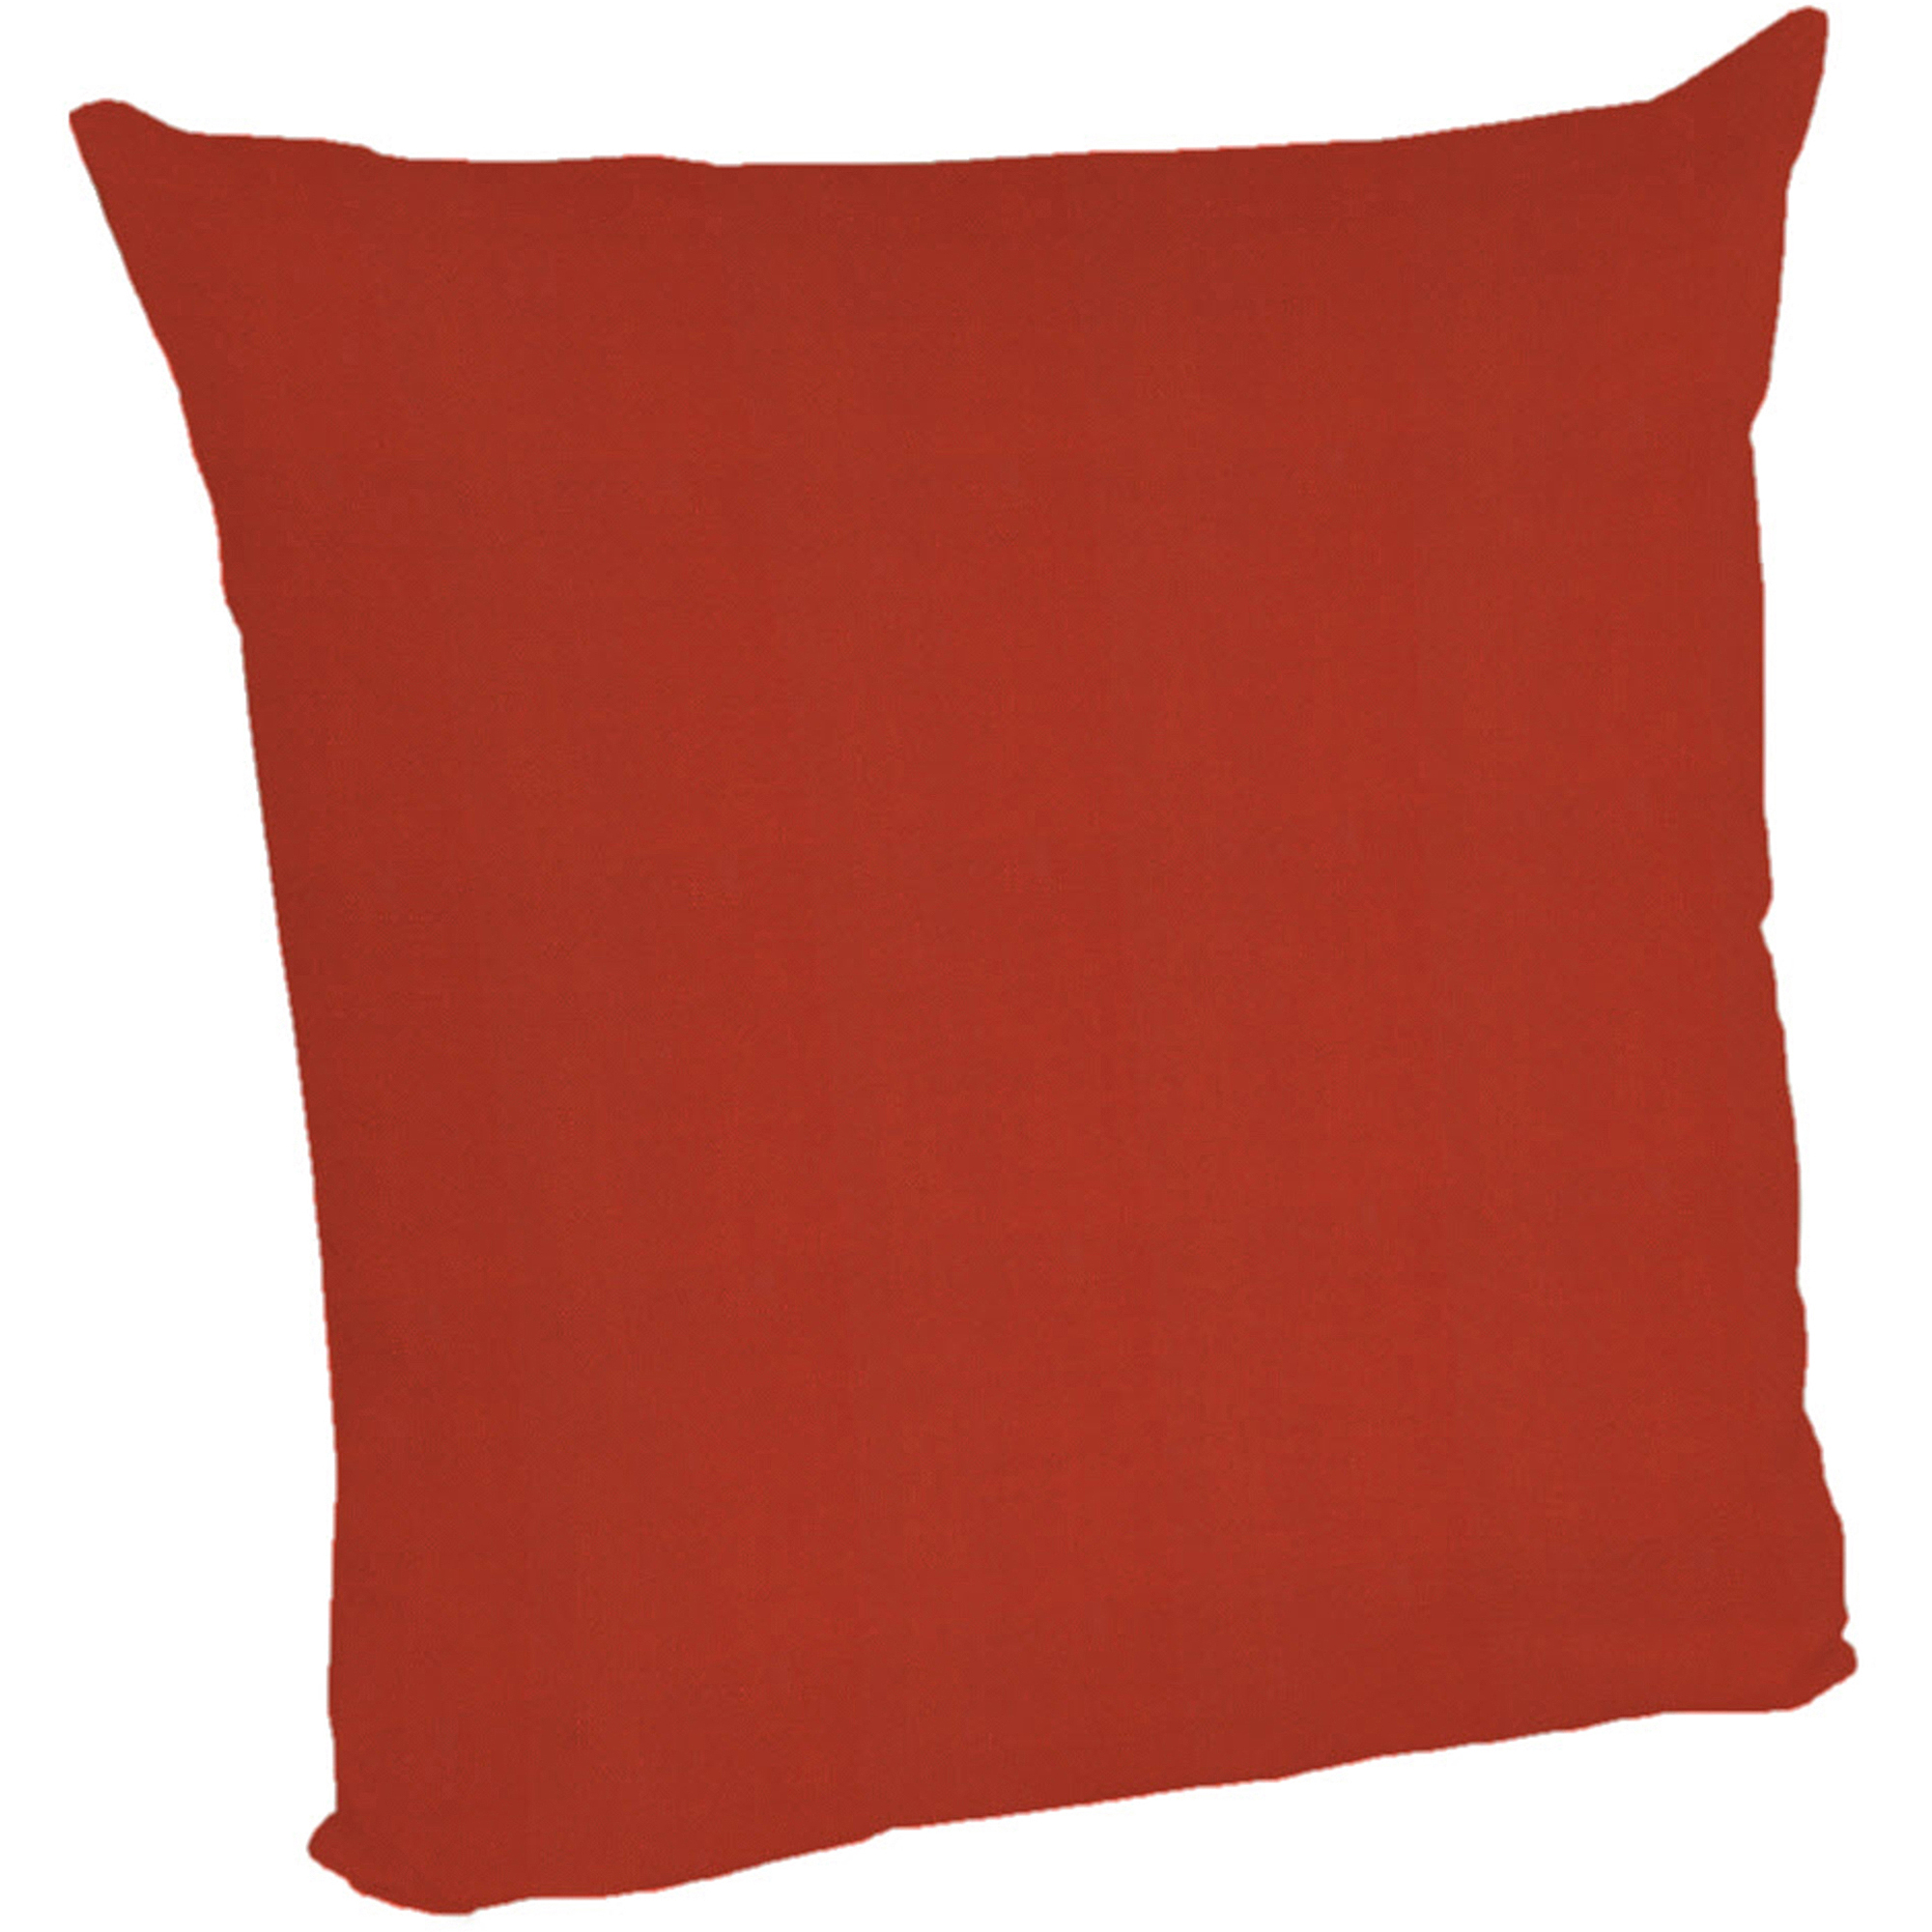 Arden Deep Seat Slipcover for Pillow Back, Red Texture (Cushion Not Included)